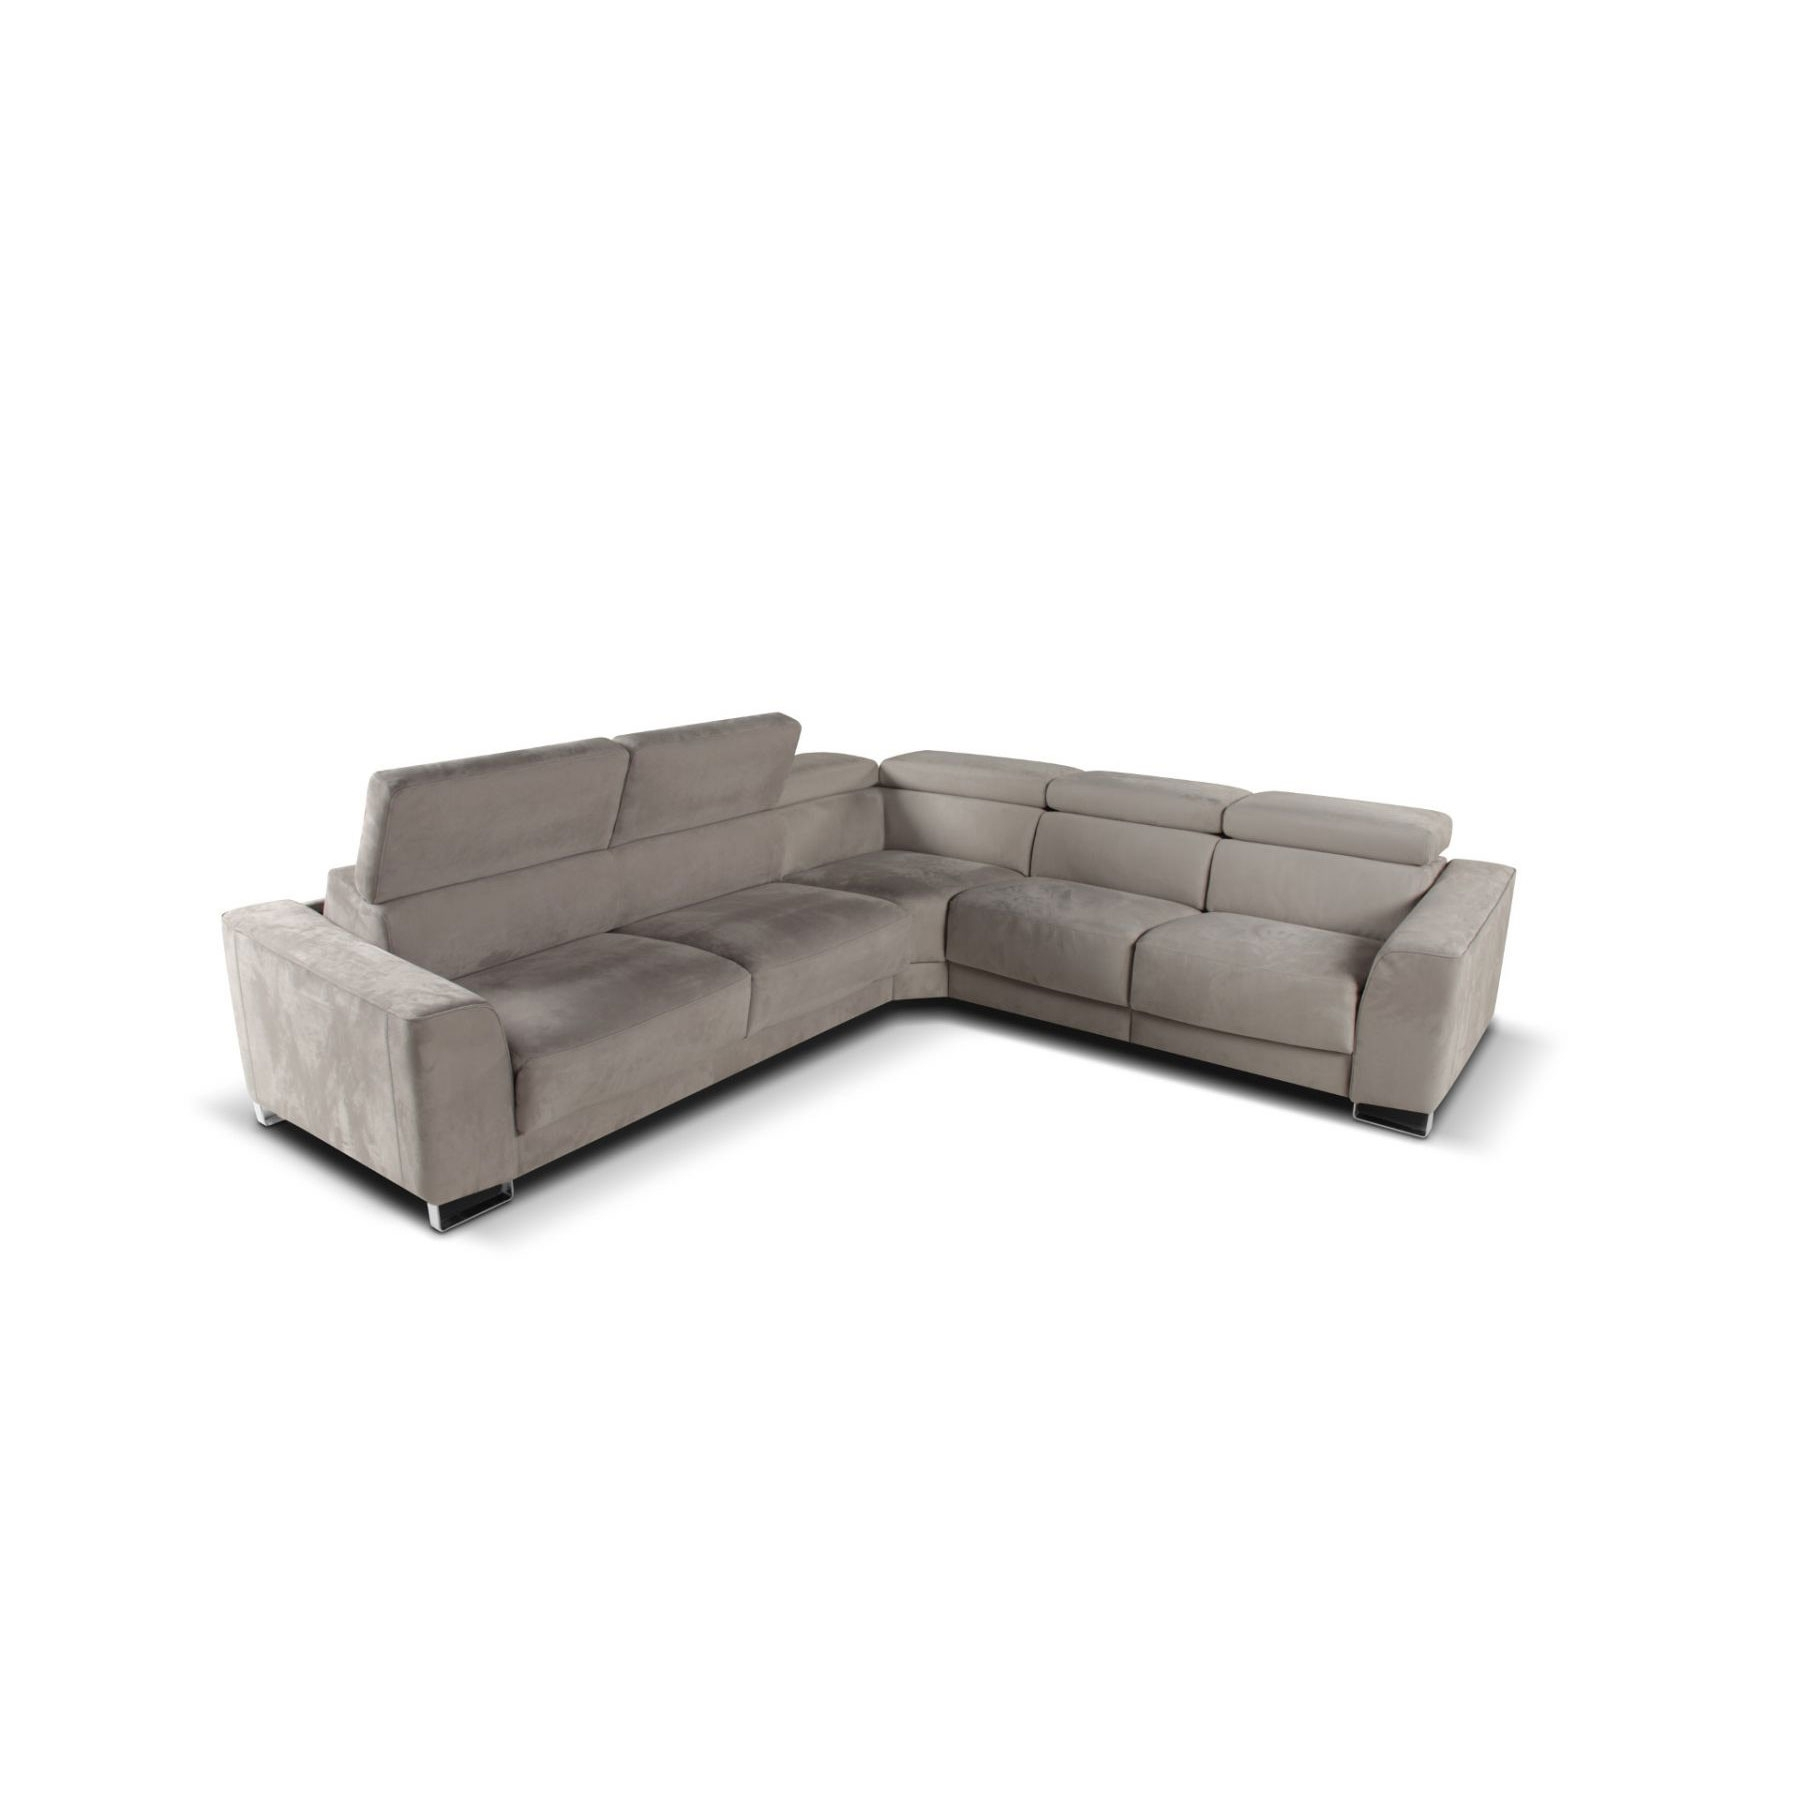 Camilion Leather (Or Fabric) Sofa / Sectional / Sleepergiuseppe in Lucy Grey 2 Piece Sectionals With Raf Chaise (Image 6 of 30)